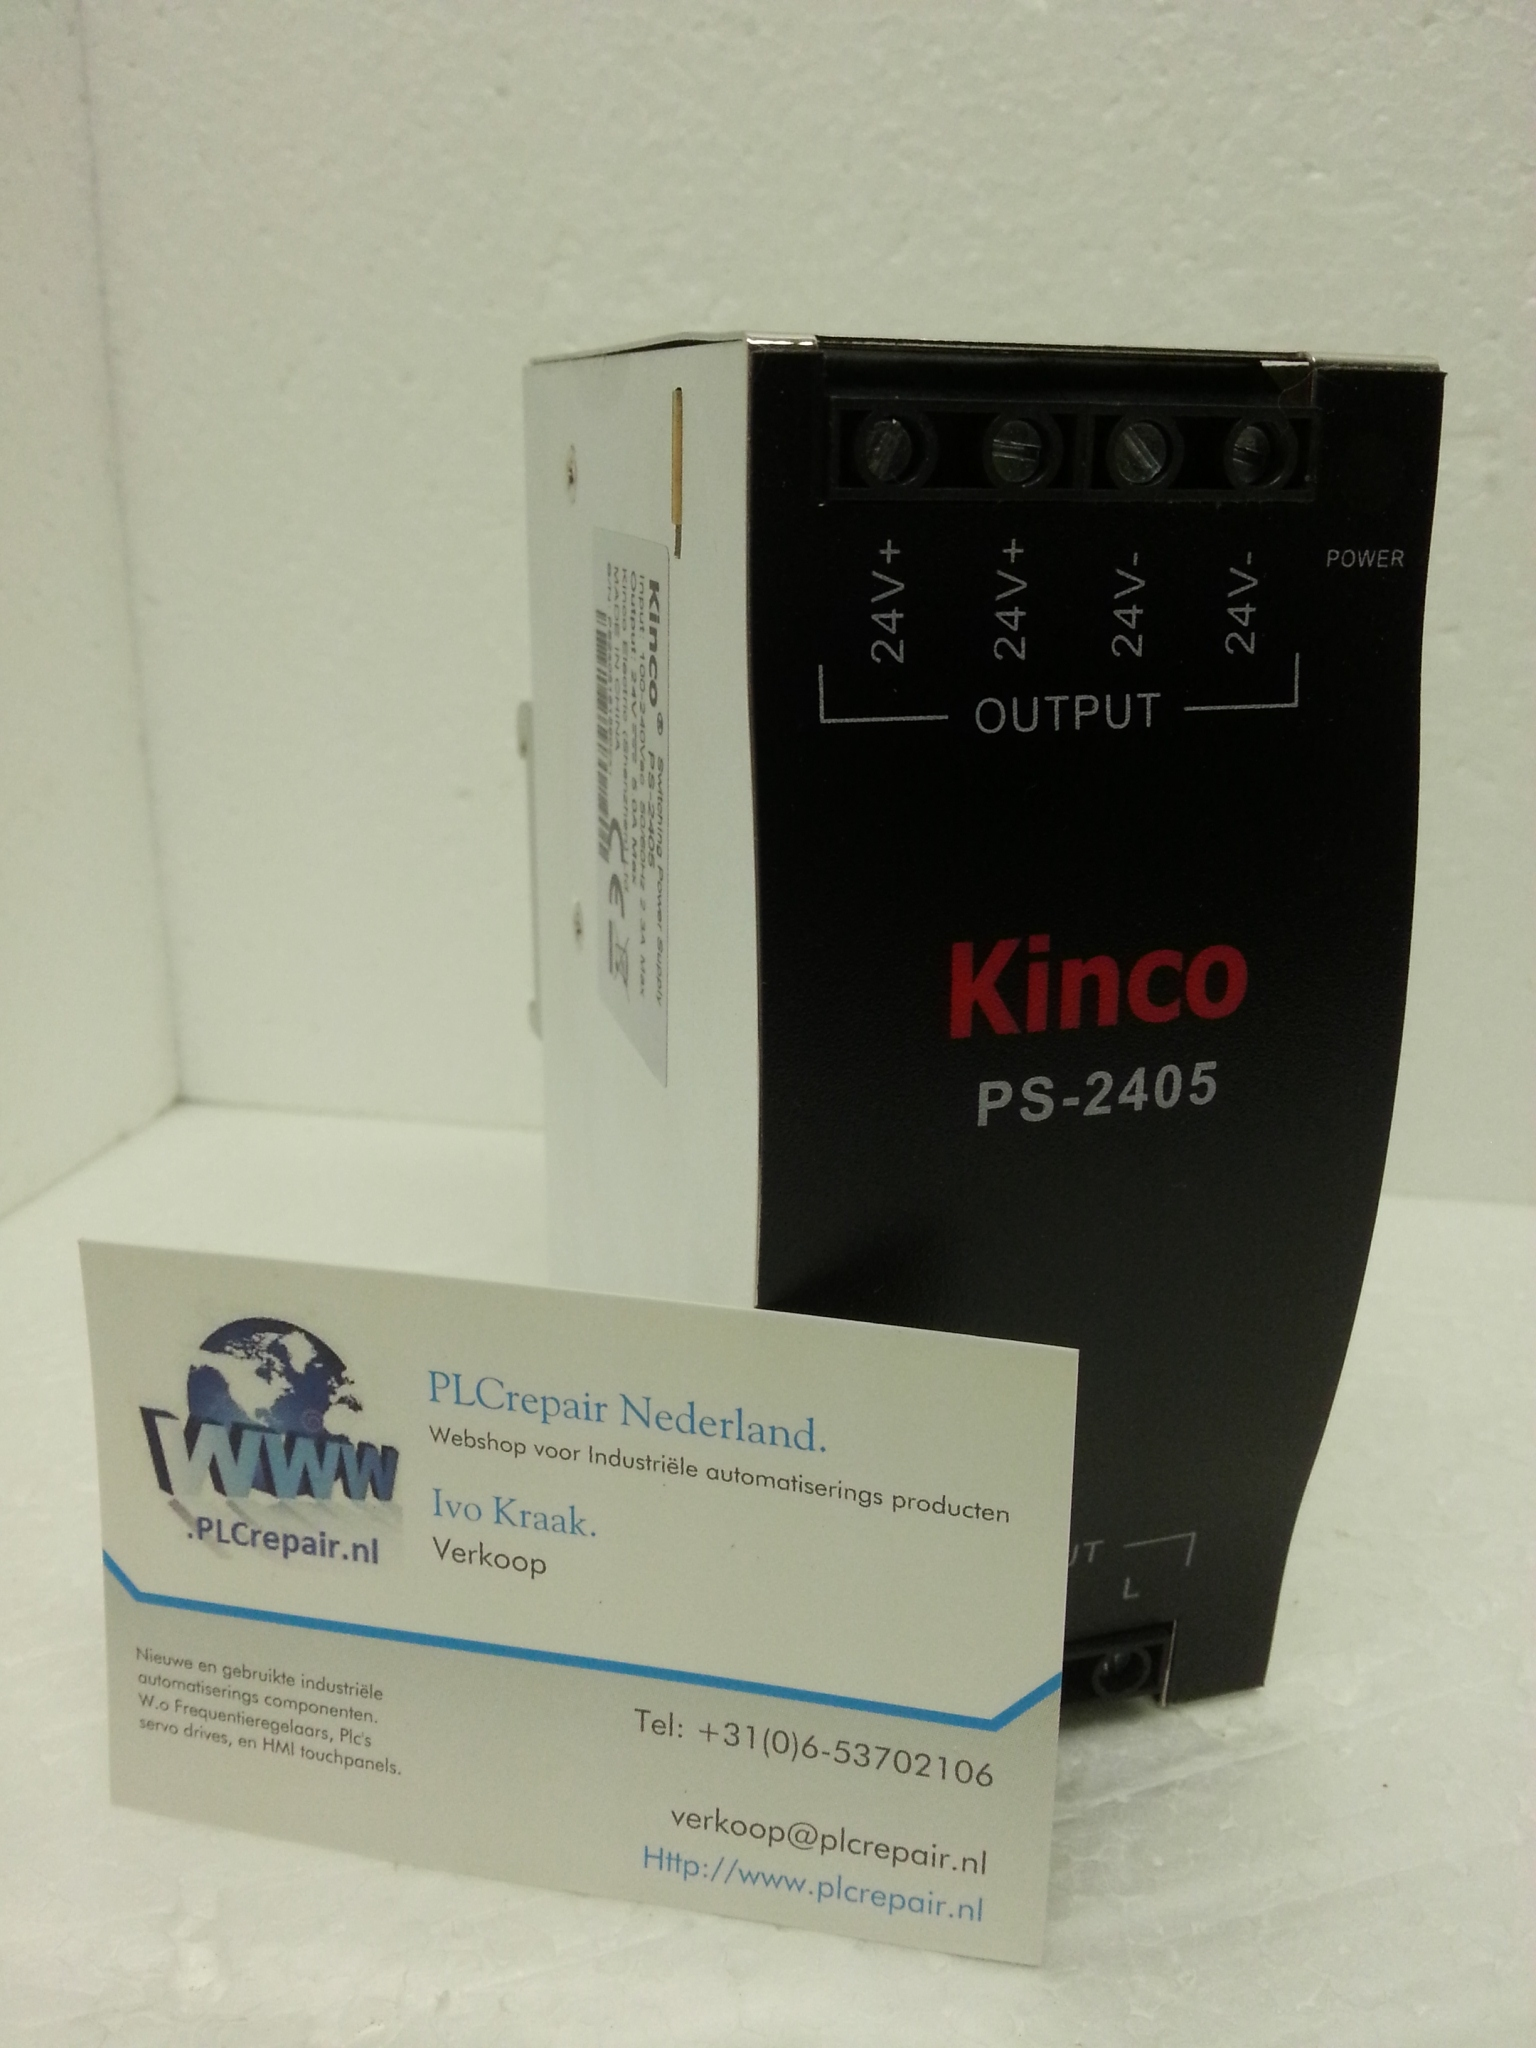 PS2405 24Vdc-5A power supply Kinco